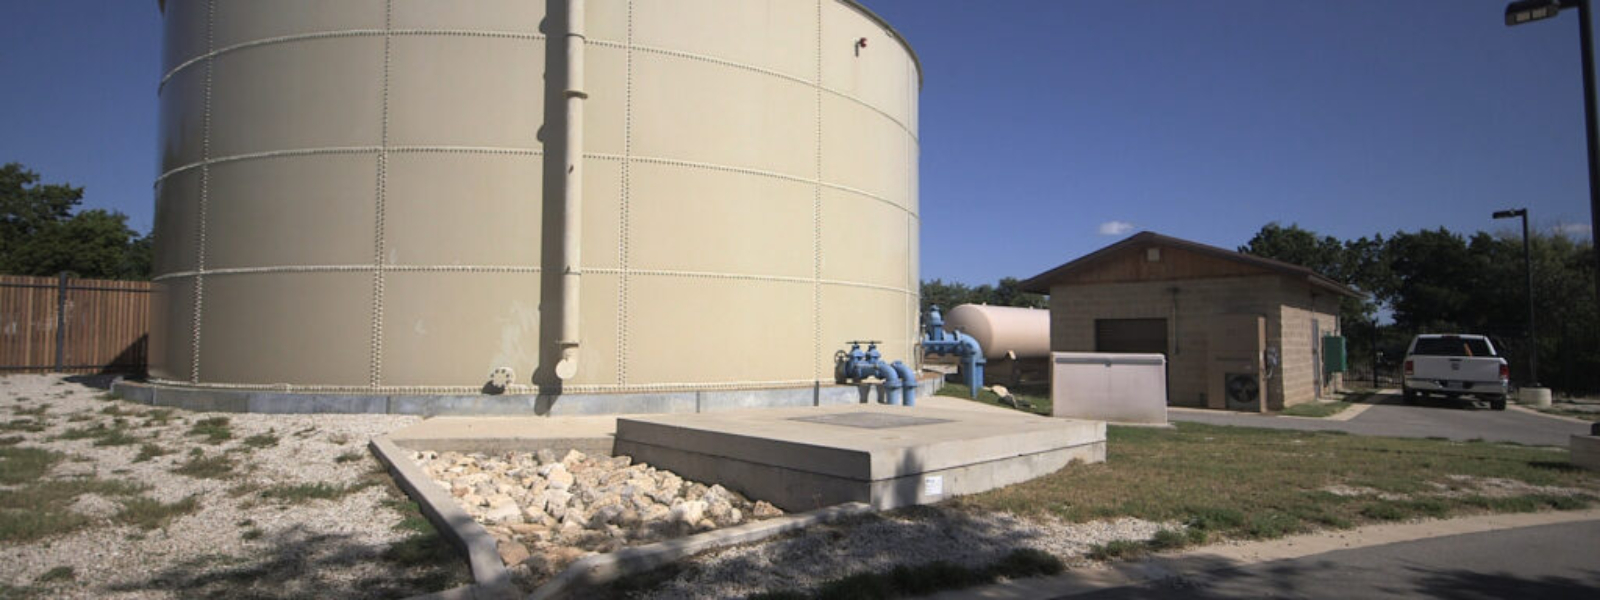 Expert Article: In this time of crisis, water utilities offer safe, stable jobs